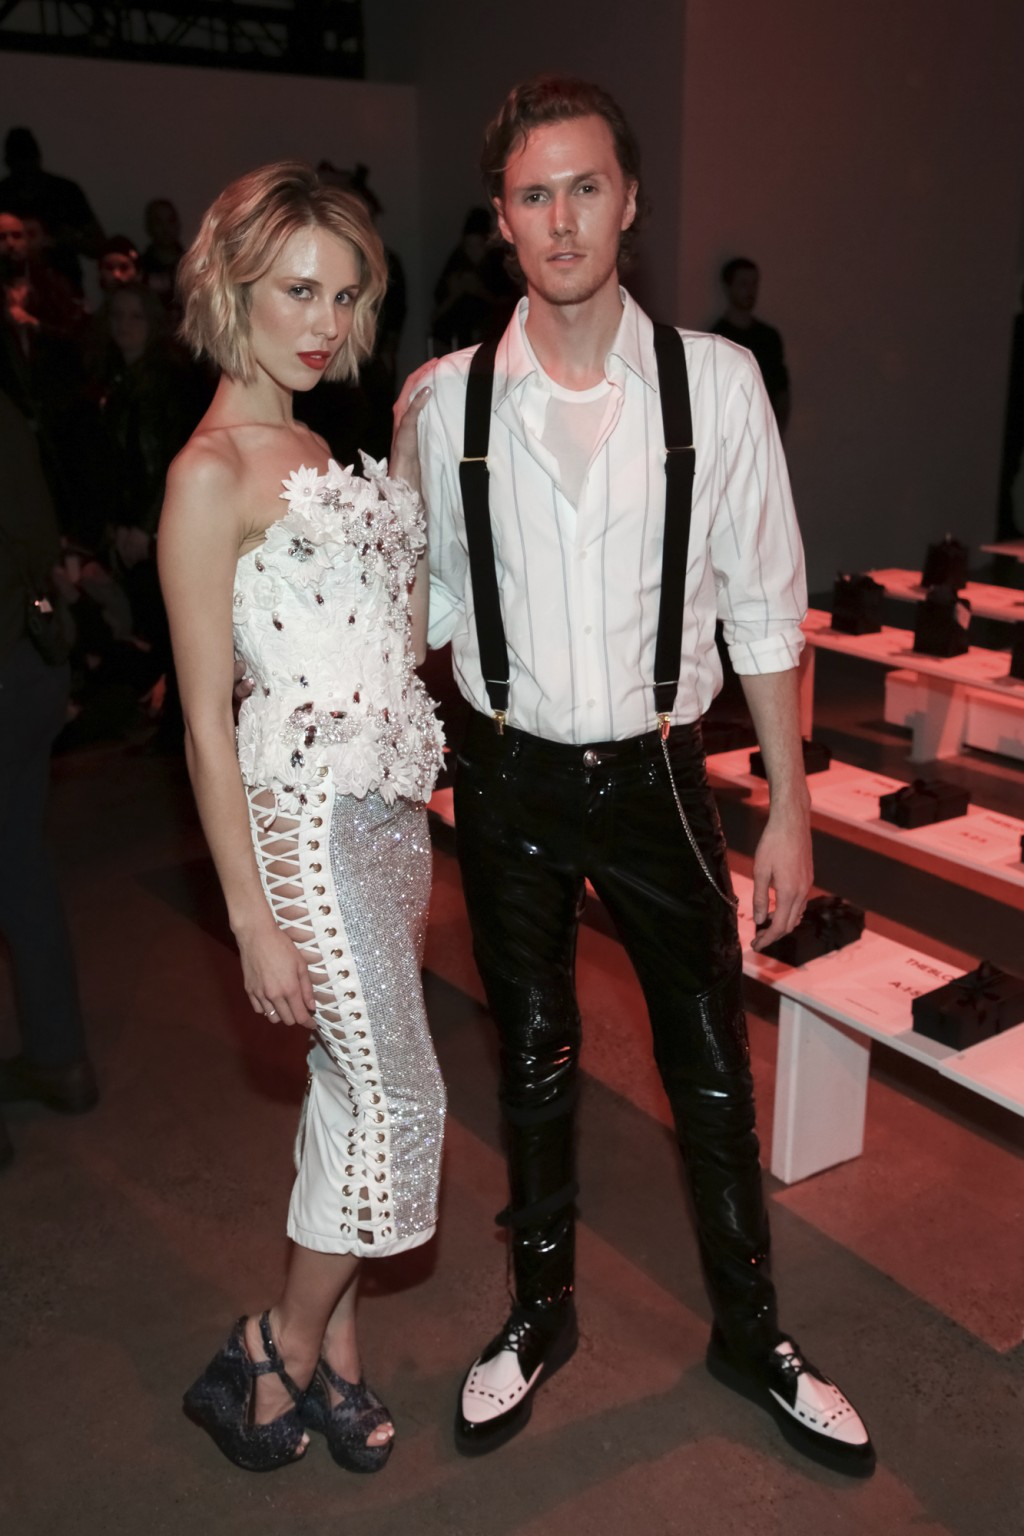 Tessa Hilton, left, and Barron Hilton II attend The Blonds Runway Show held at Spring Studios during New York Fashion Week on Tuesday, Feb. 12, 2019 i